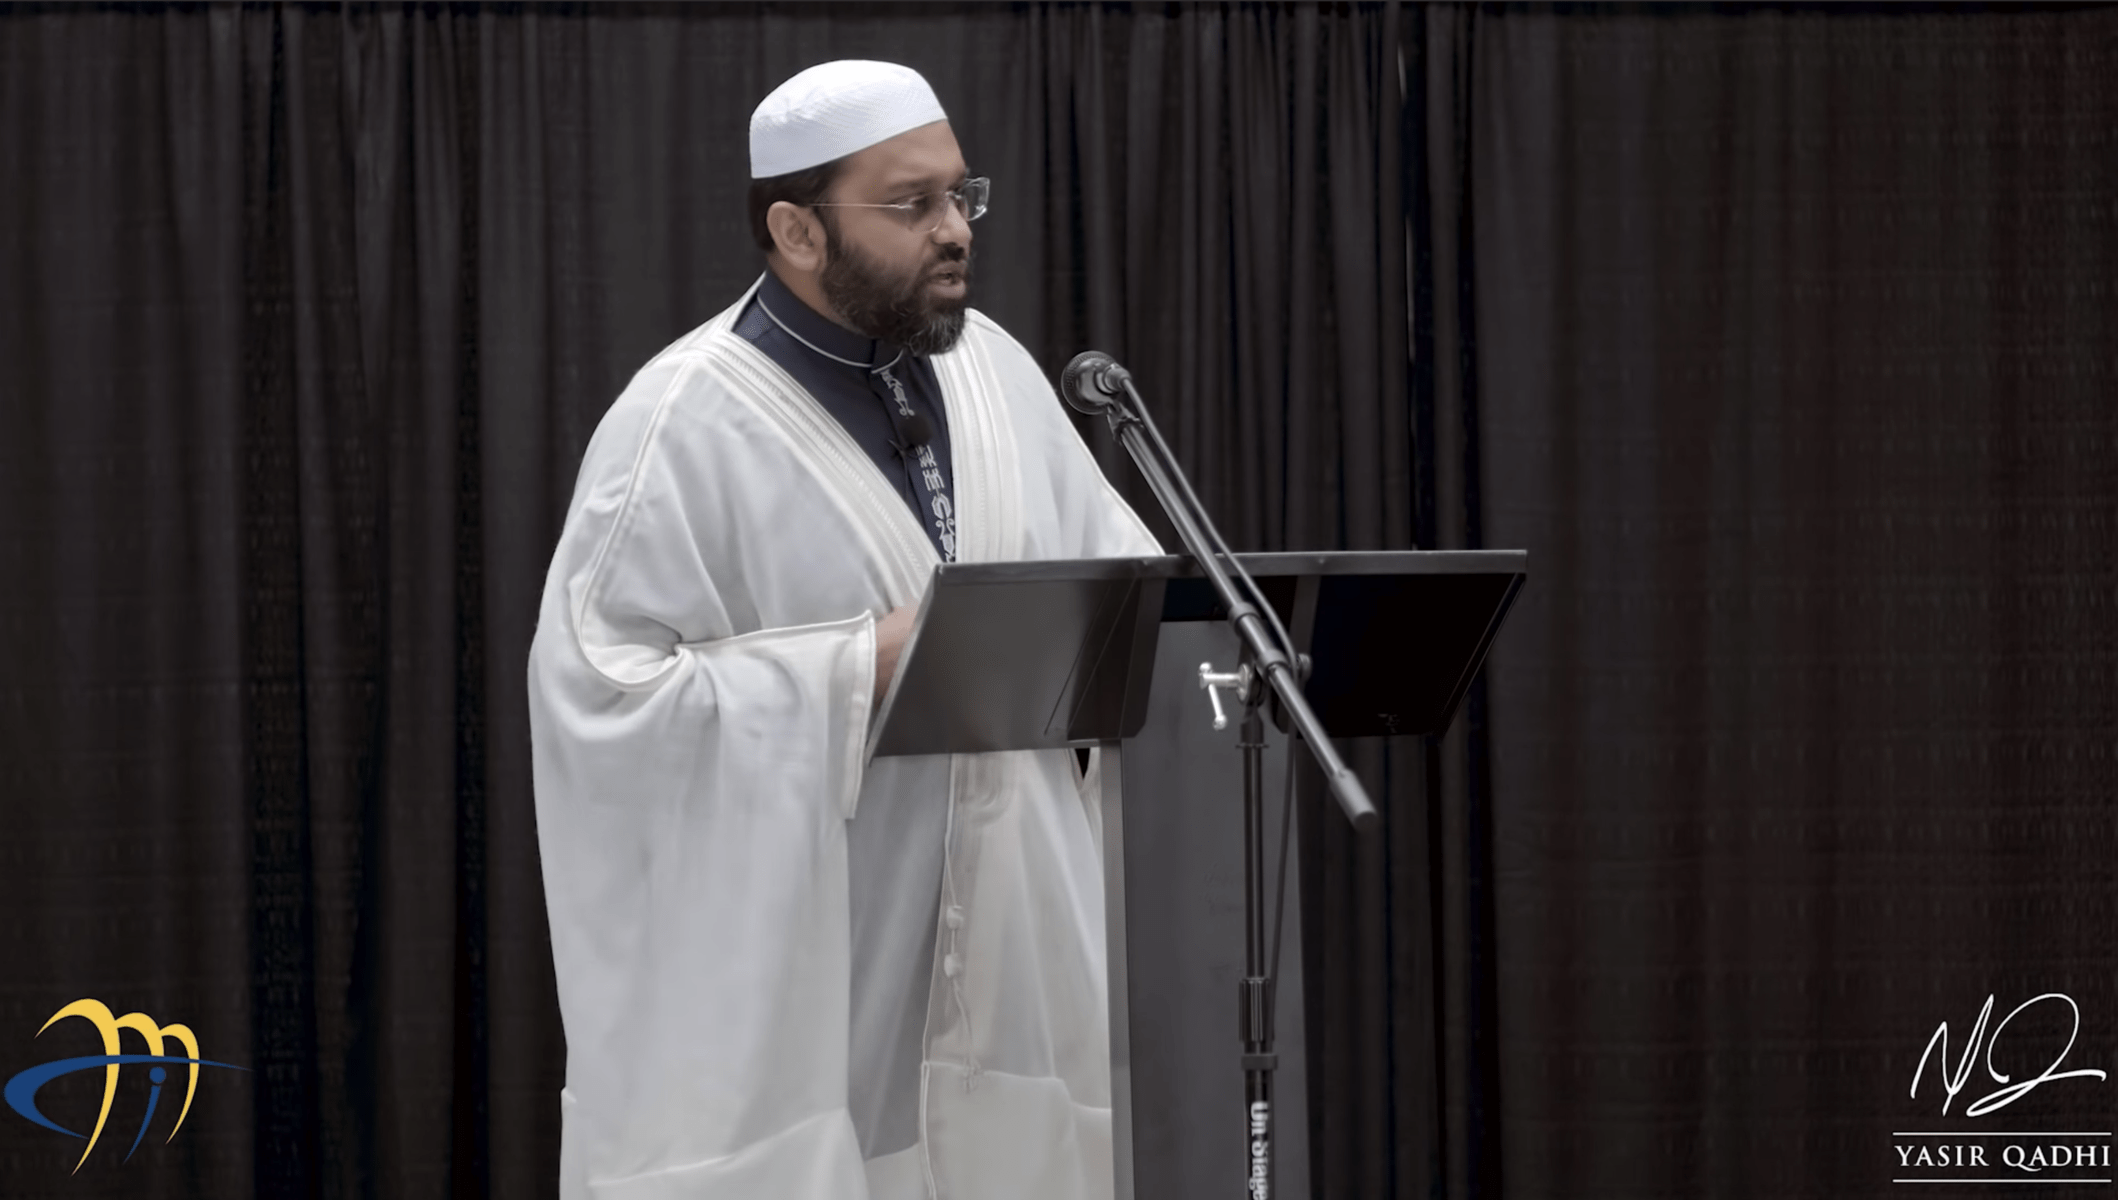 Yasir Qadhi – Three Important Pieces of Advice for the Muslim Community